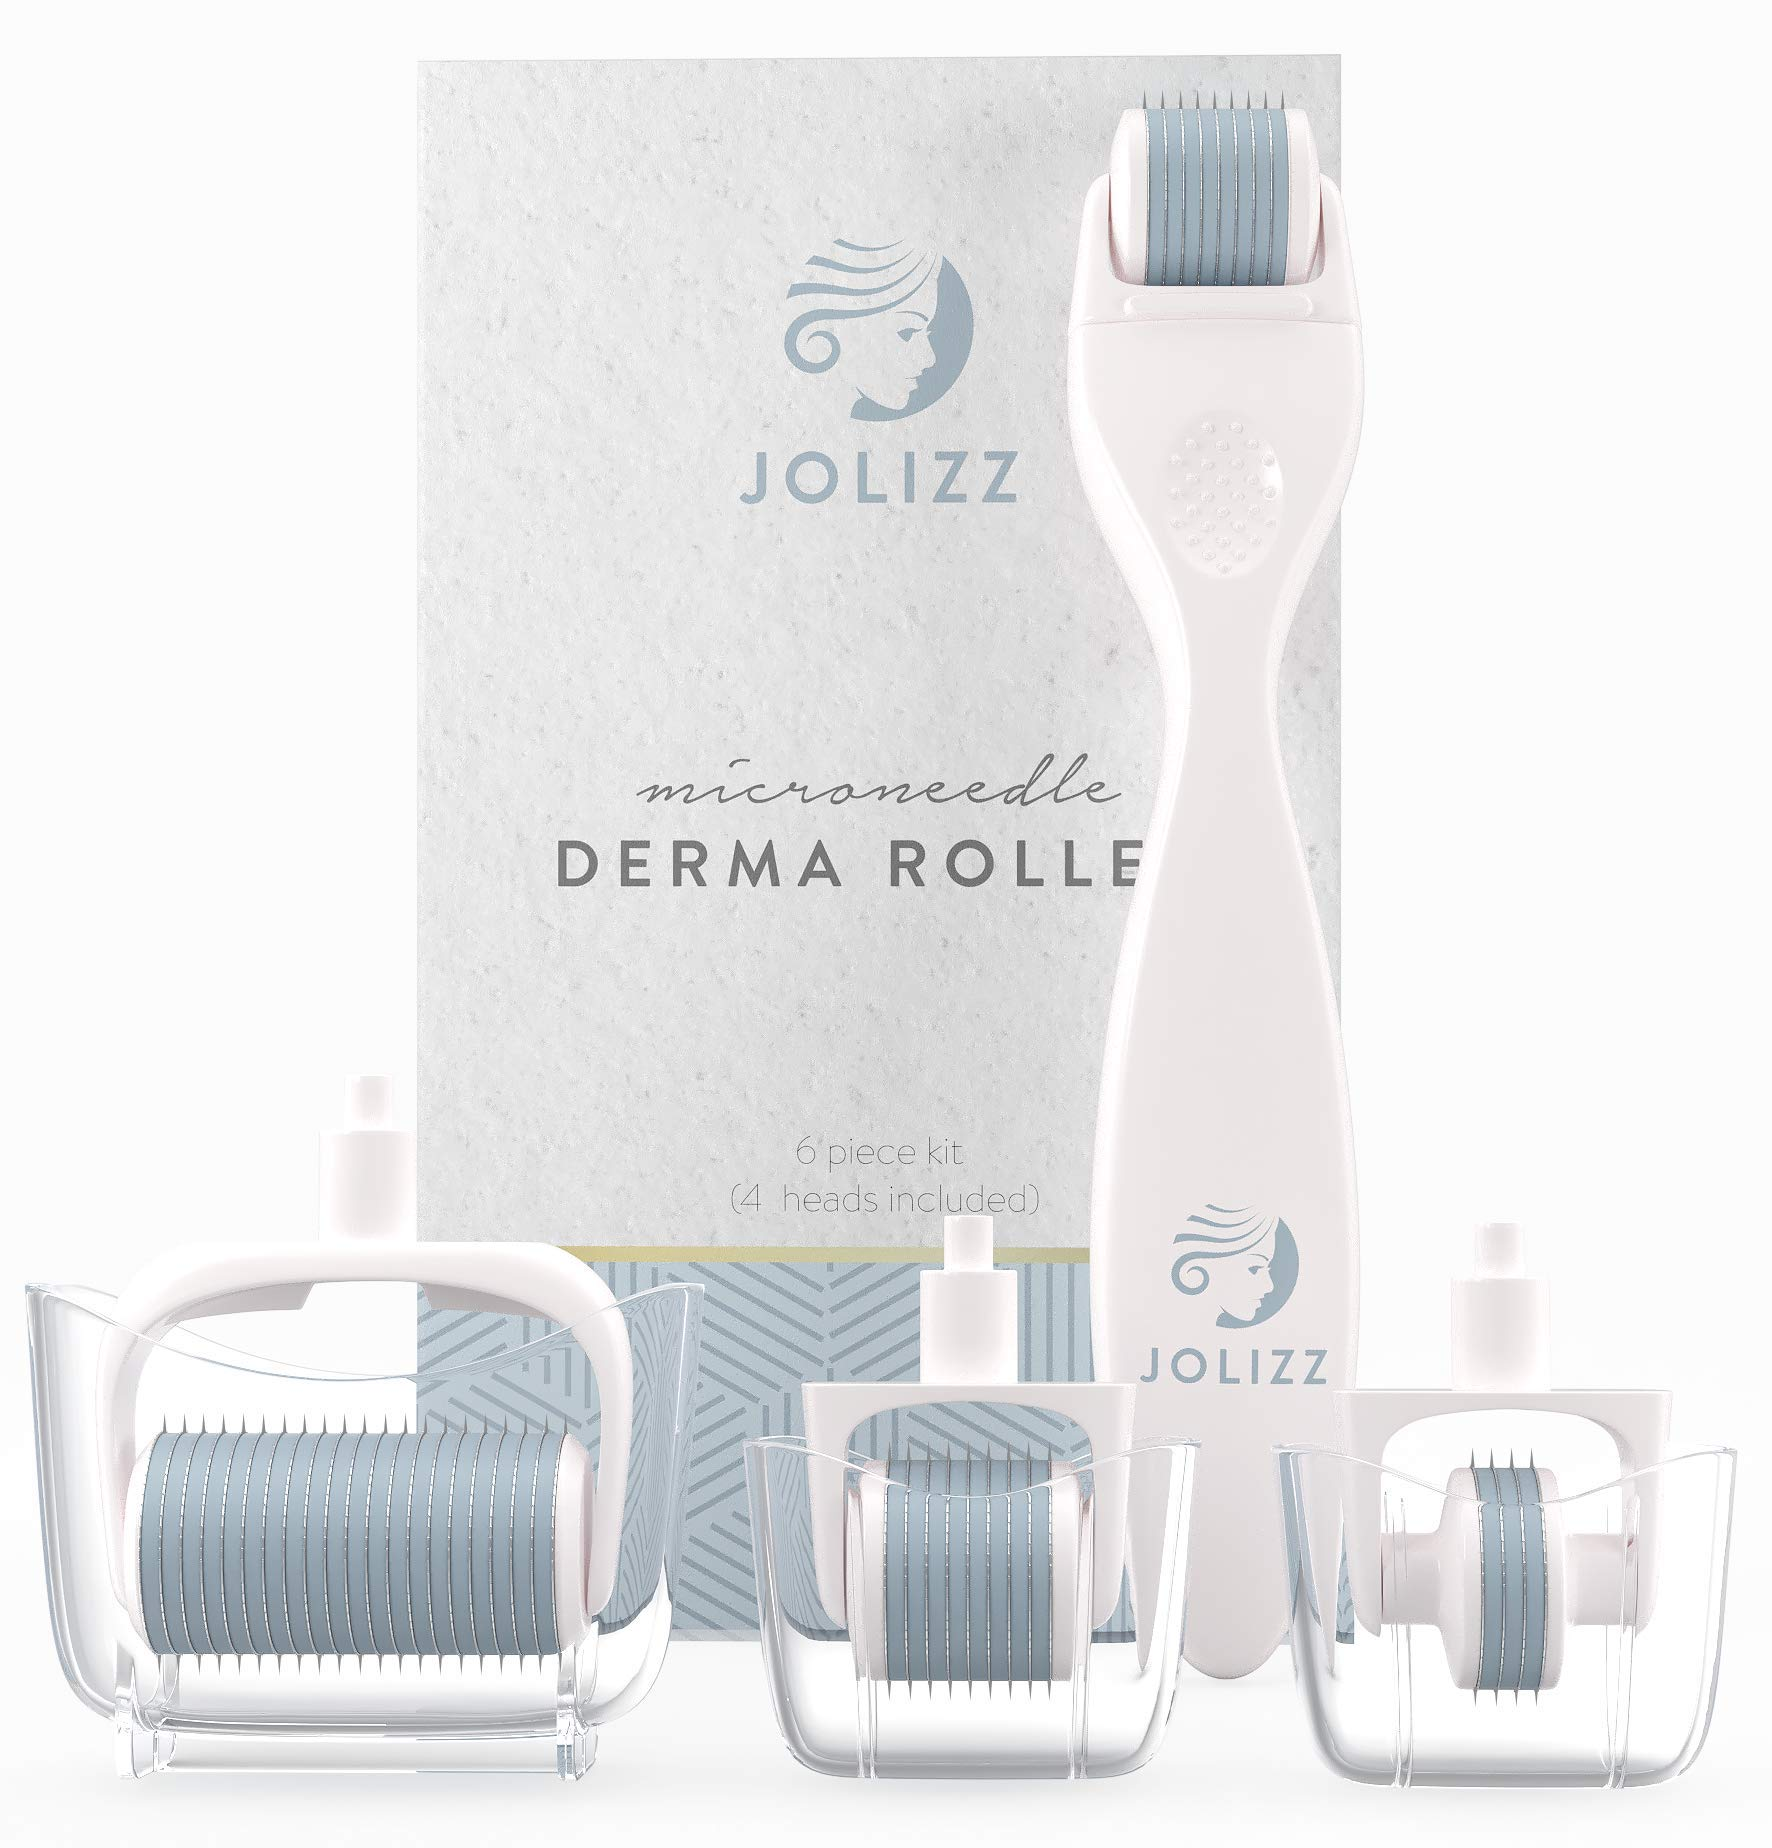 Jolizz Derma Roller Microdermabrasion Tool with FOUR Titanium Replaceable 0.25mm Microneedling Heads :1 Small 240 Needles, 2 Medium 600 Needles and 1 Large 1200 Needles - Women Face & Skin Care by Jolizz